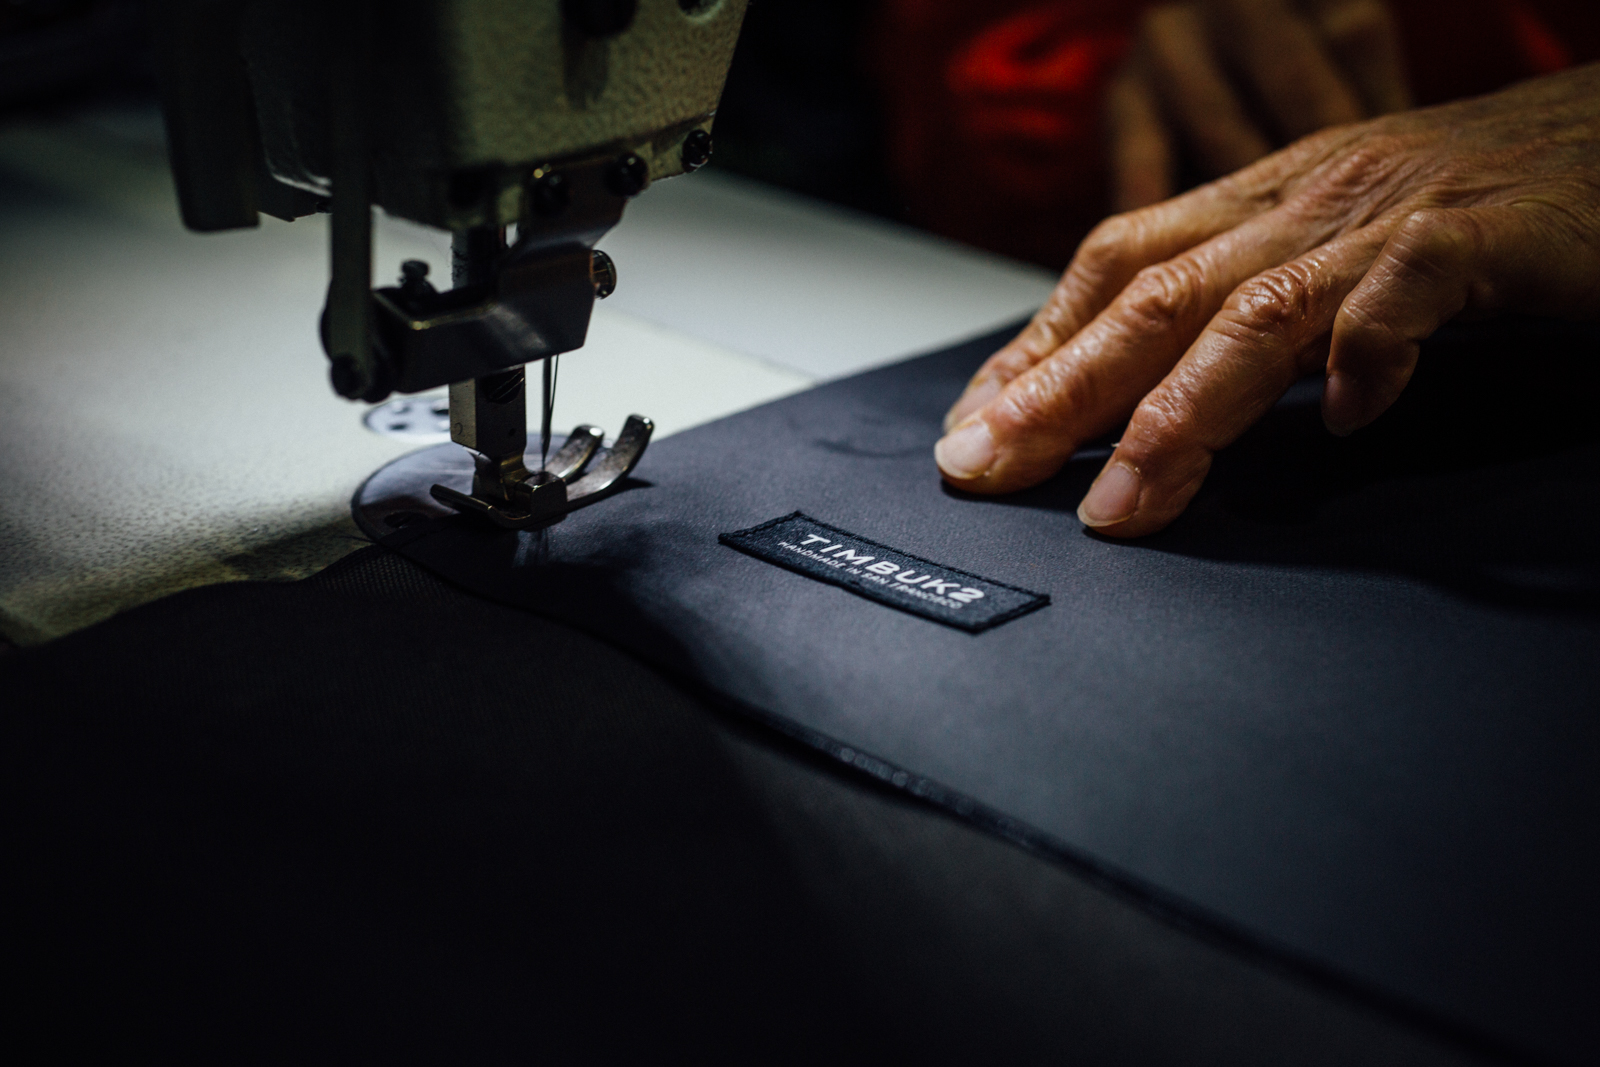 Timbuk2 is now owned by custom office furniture maker Exemplis.